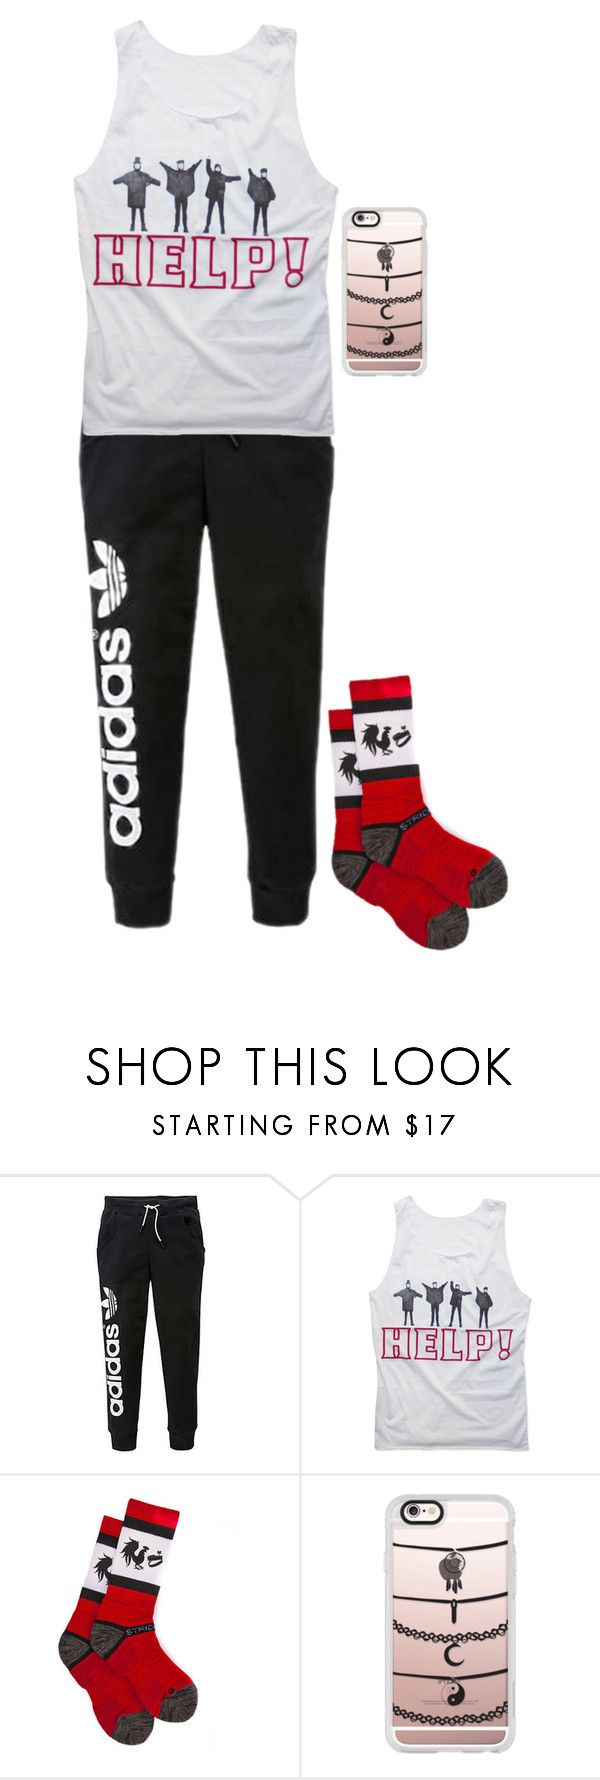 """Watching Big Brother After Dark"" by fandomsmyfriend ❤ liked on Polyvore featuring adidas Originals, Strideline and Casetify"